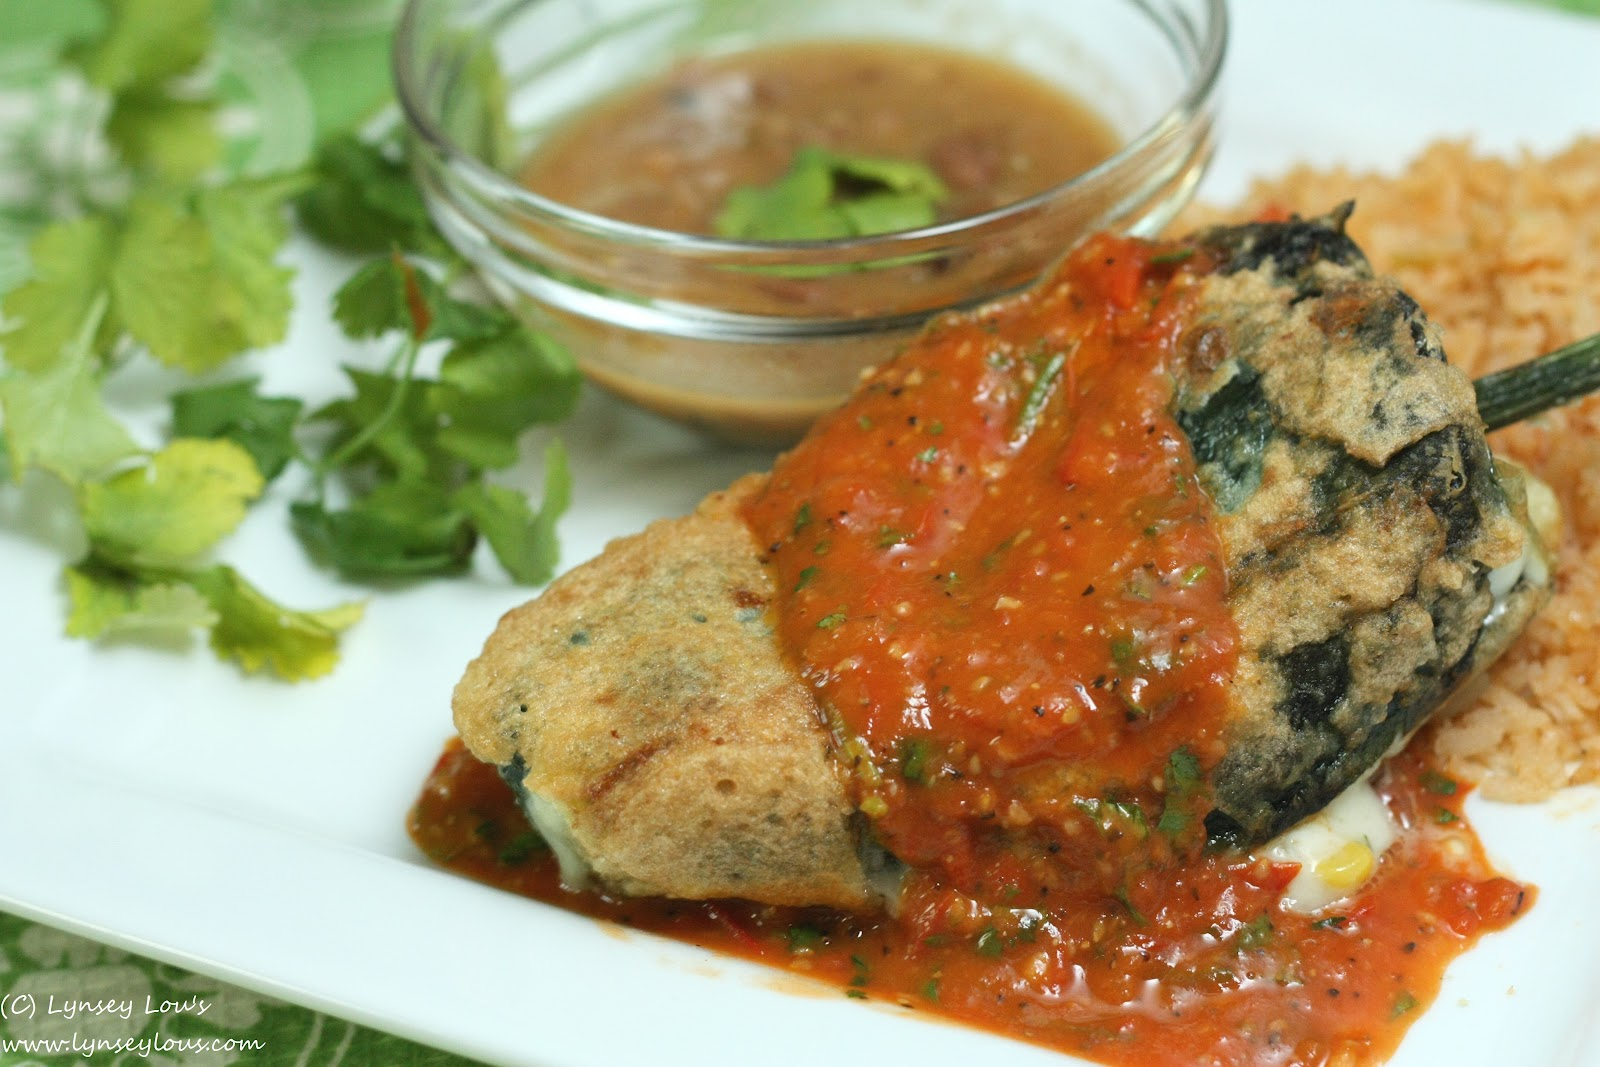 Chiles Rellenos with Tomato Sauce